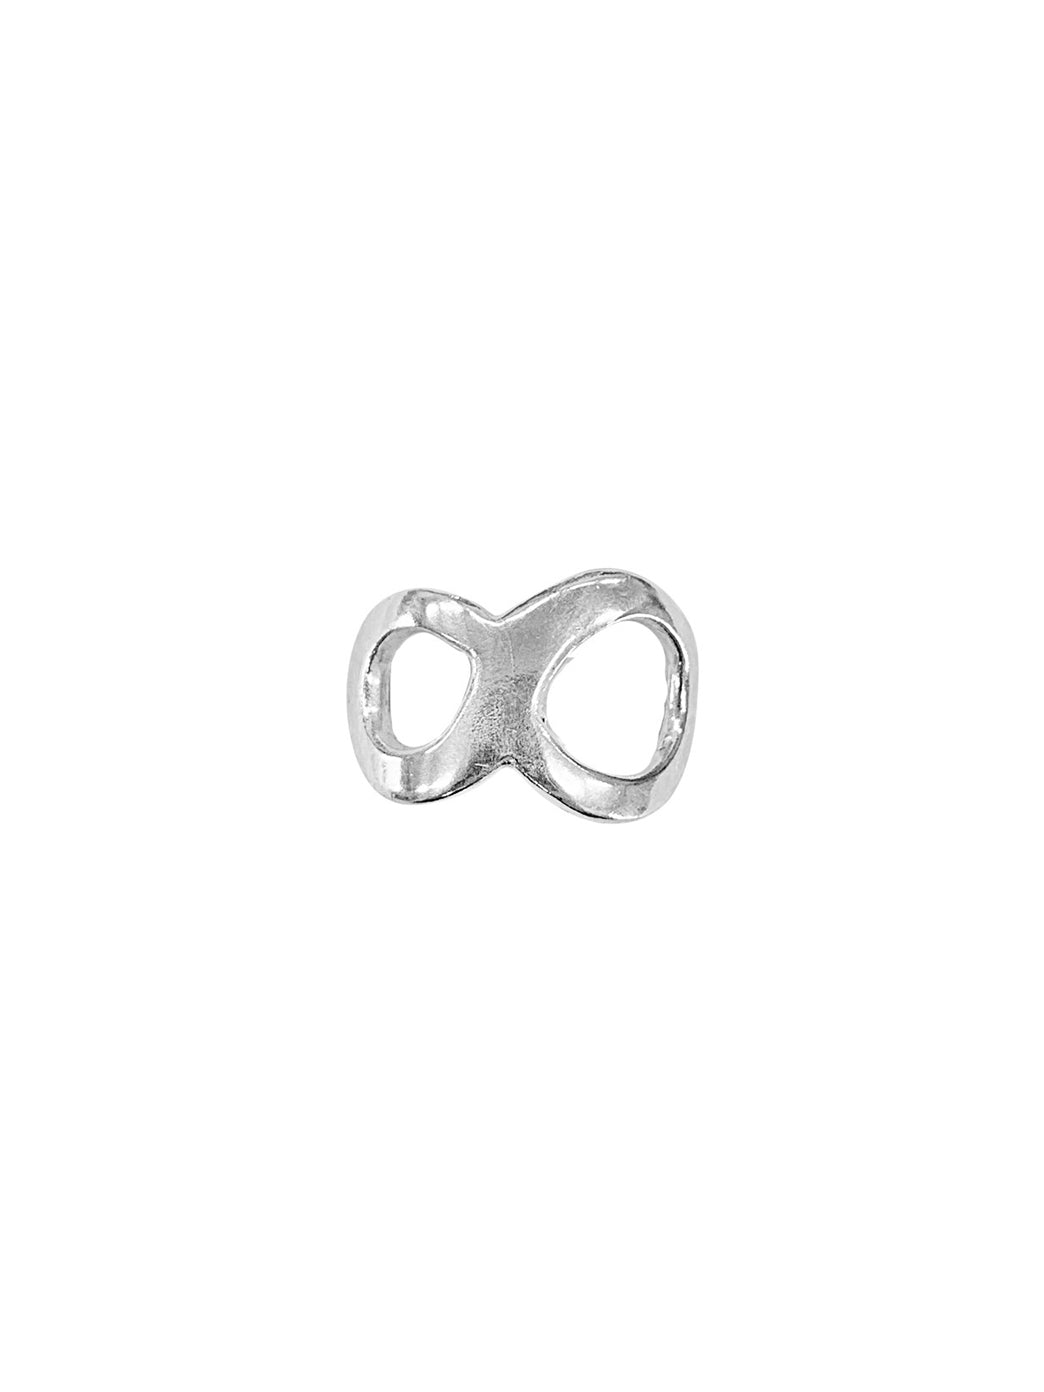 Fiorina Jewellery Men's 8 Ring